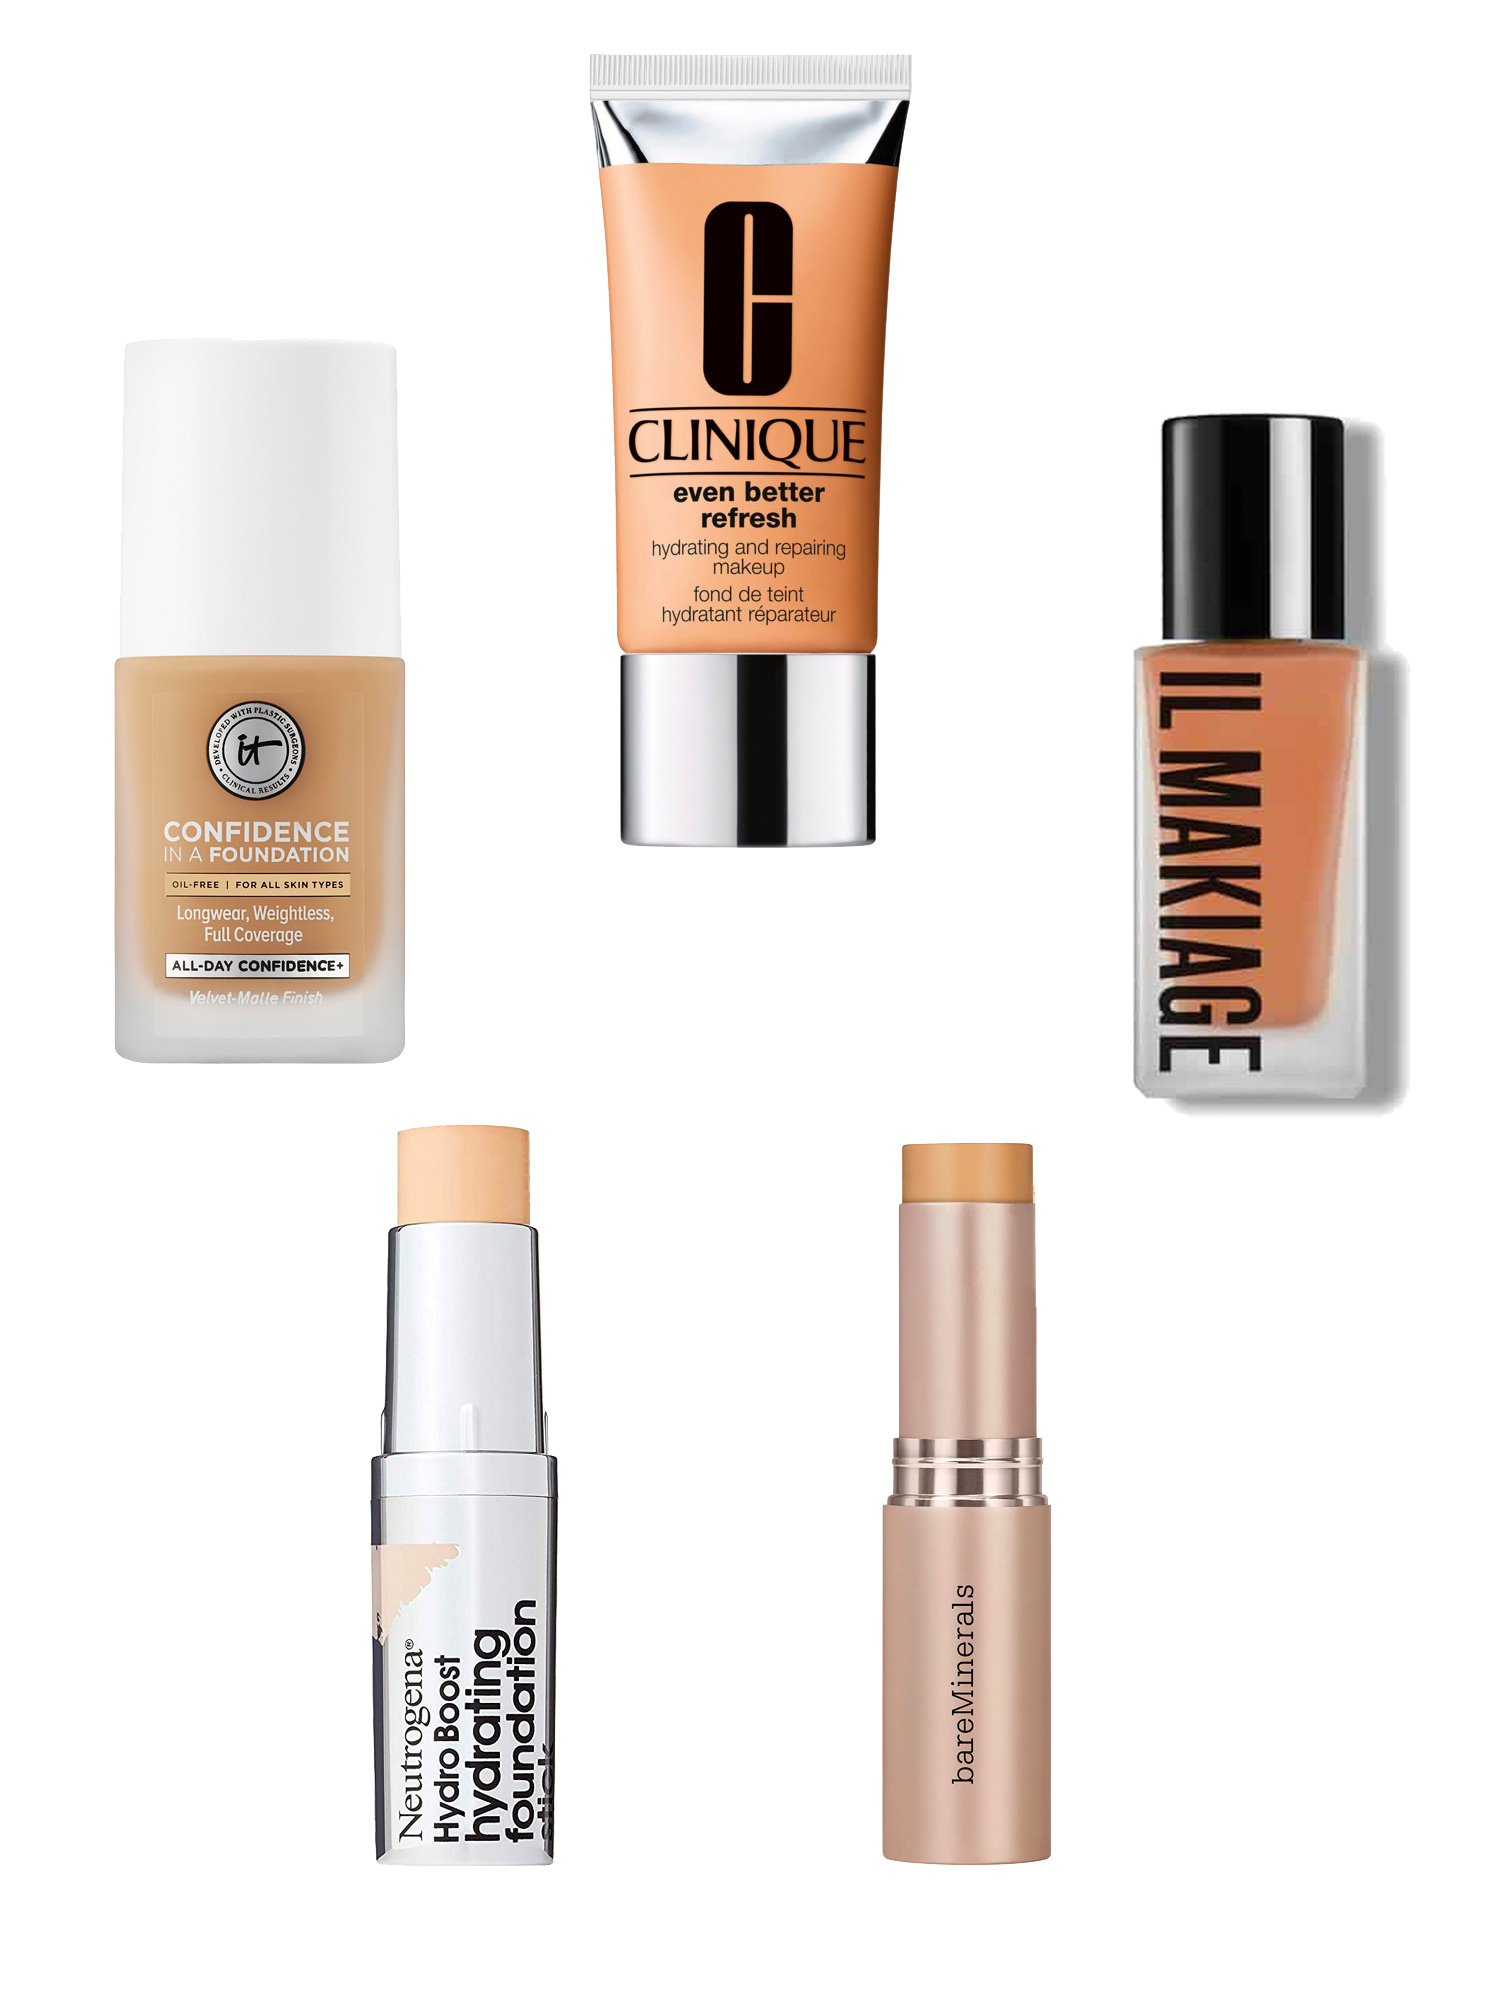 Glow Up: 5 Newer Foundations that Impress